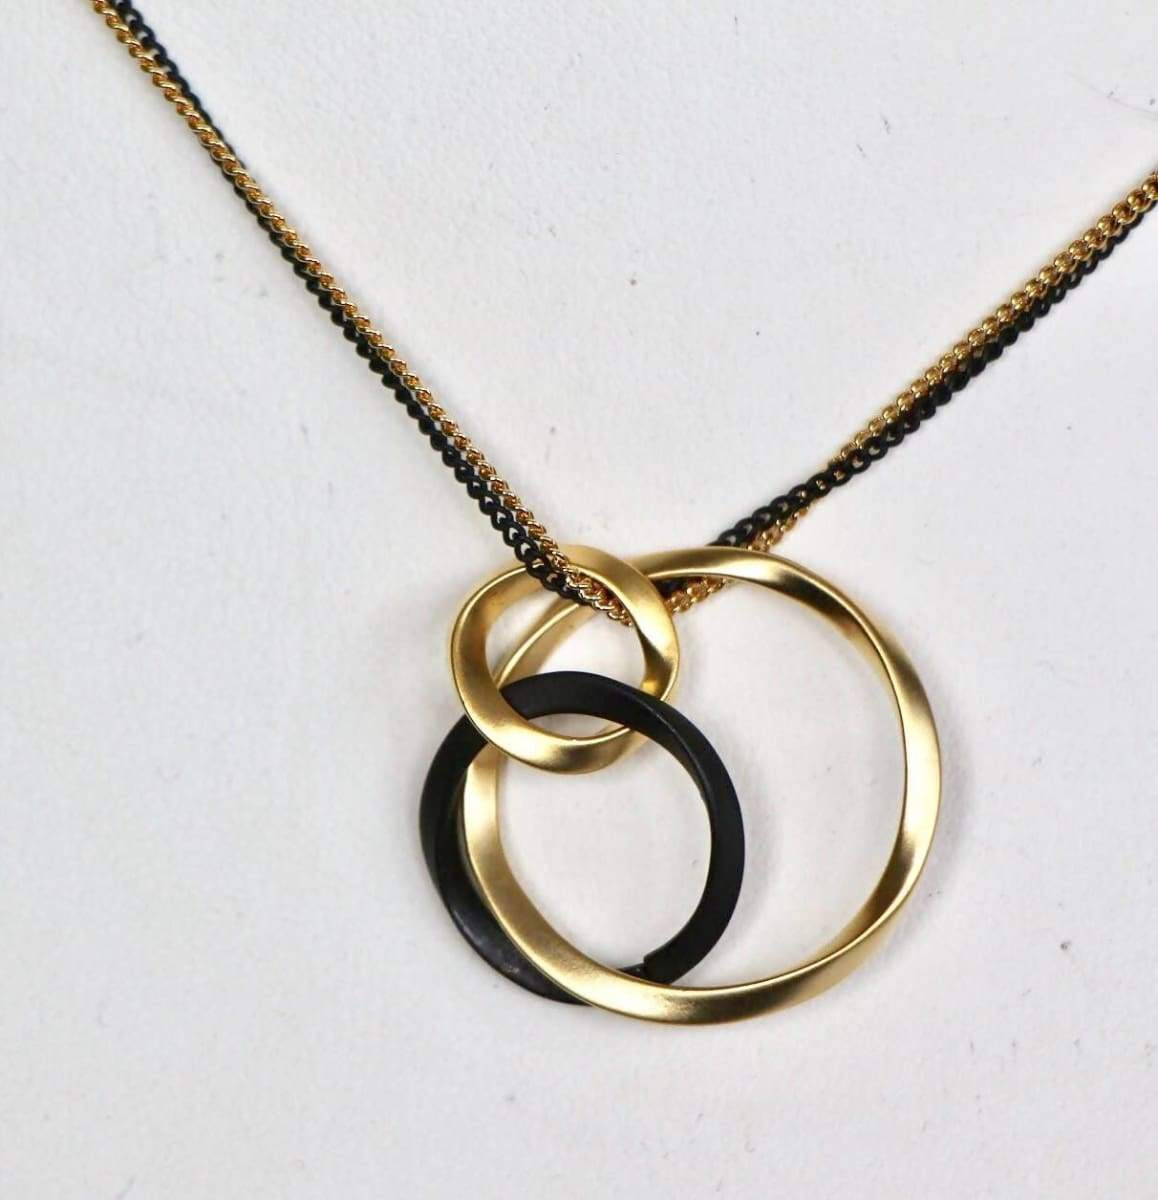 Necklaces Three Interlinked Circles Charm Necklace Gold And Rhodium Dipped Layering Linked Gift (SN89/90)